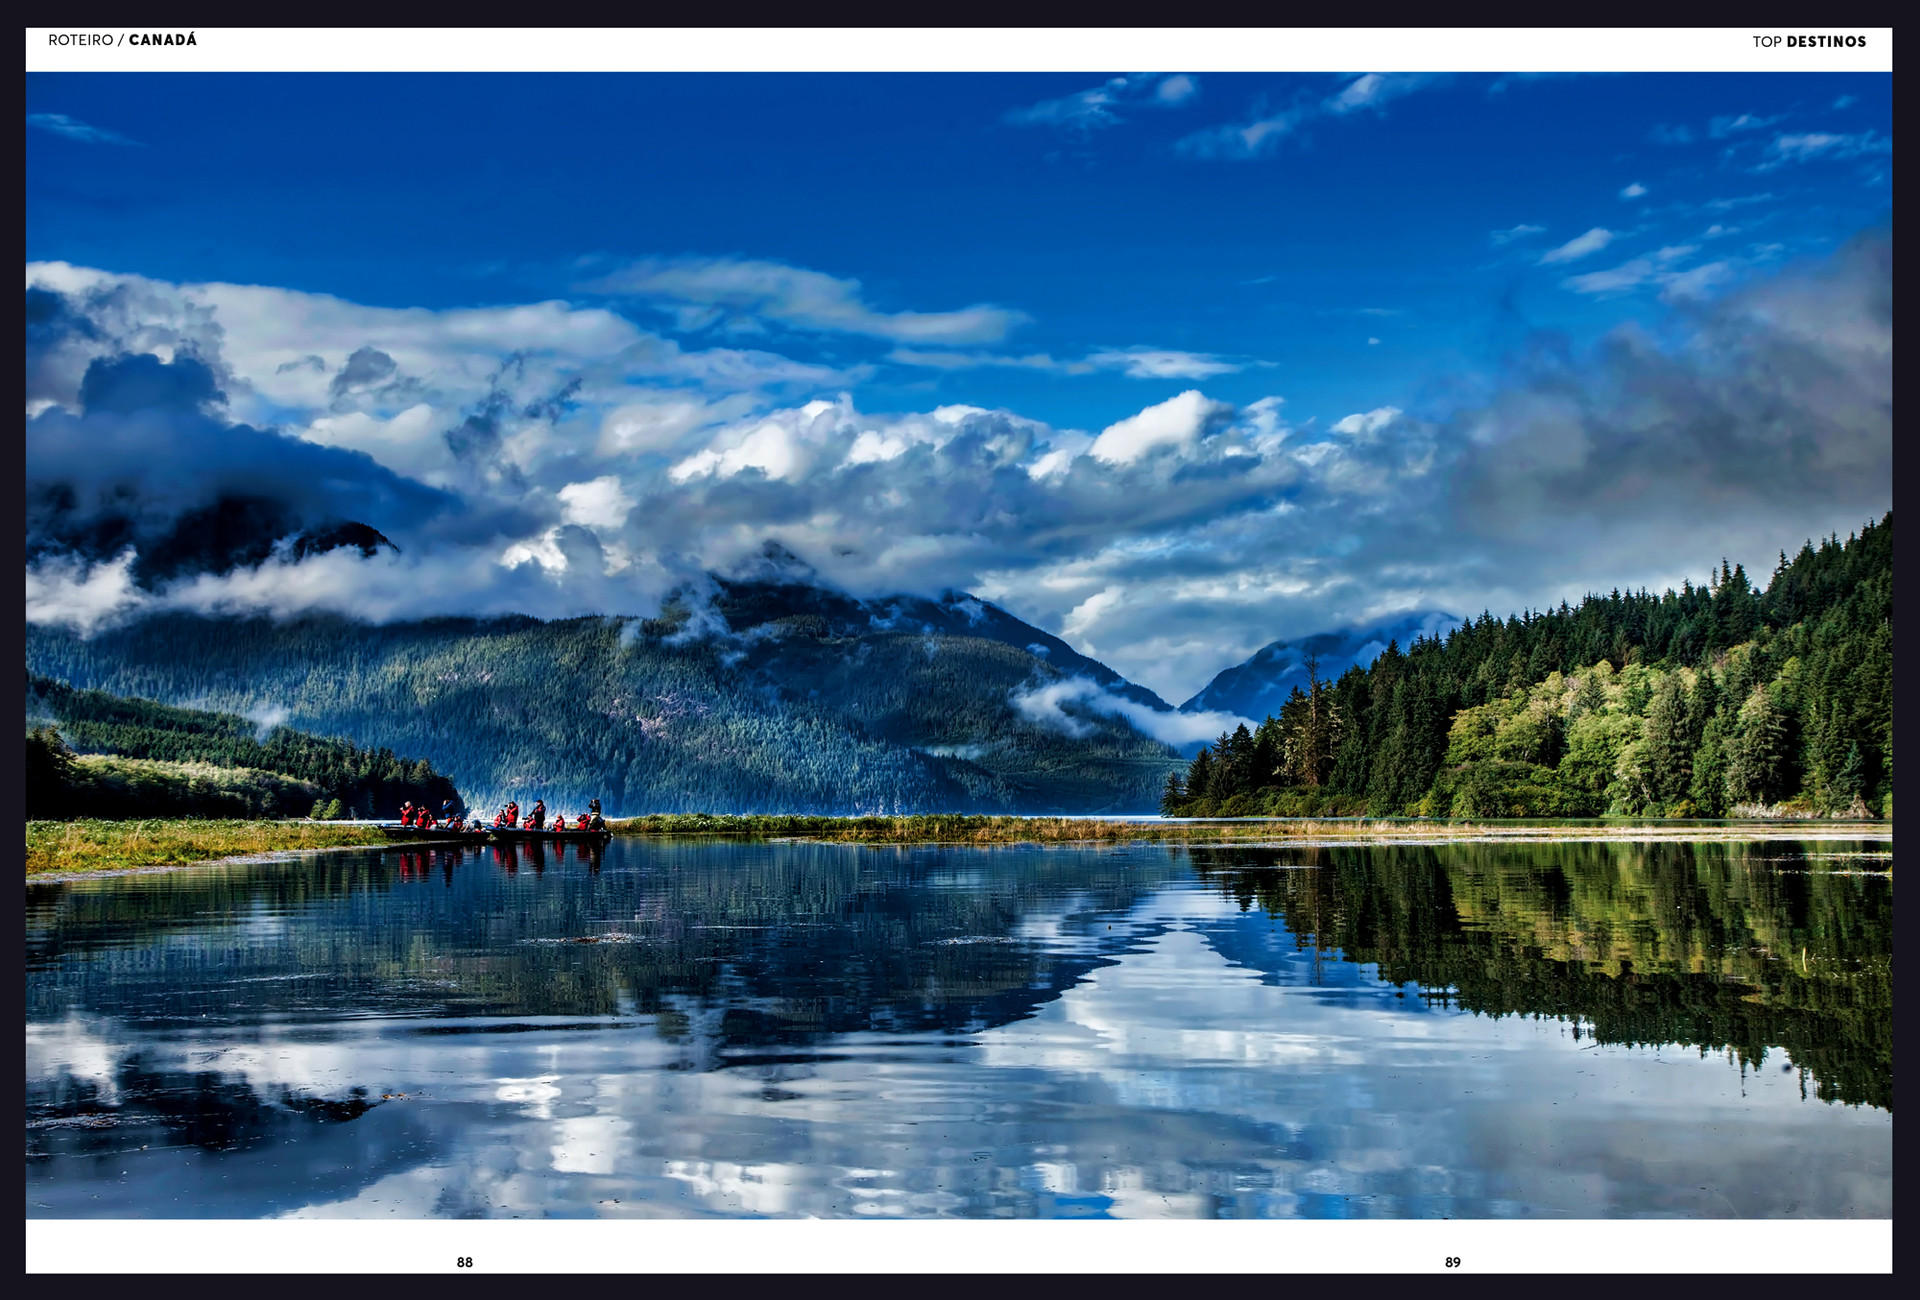 Knight Inlet - Canada